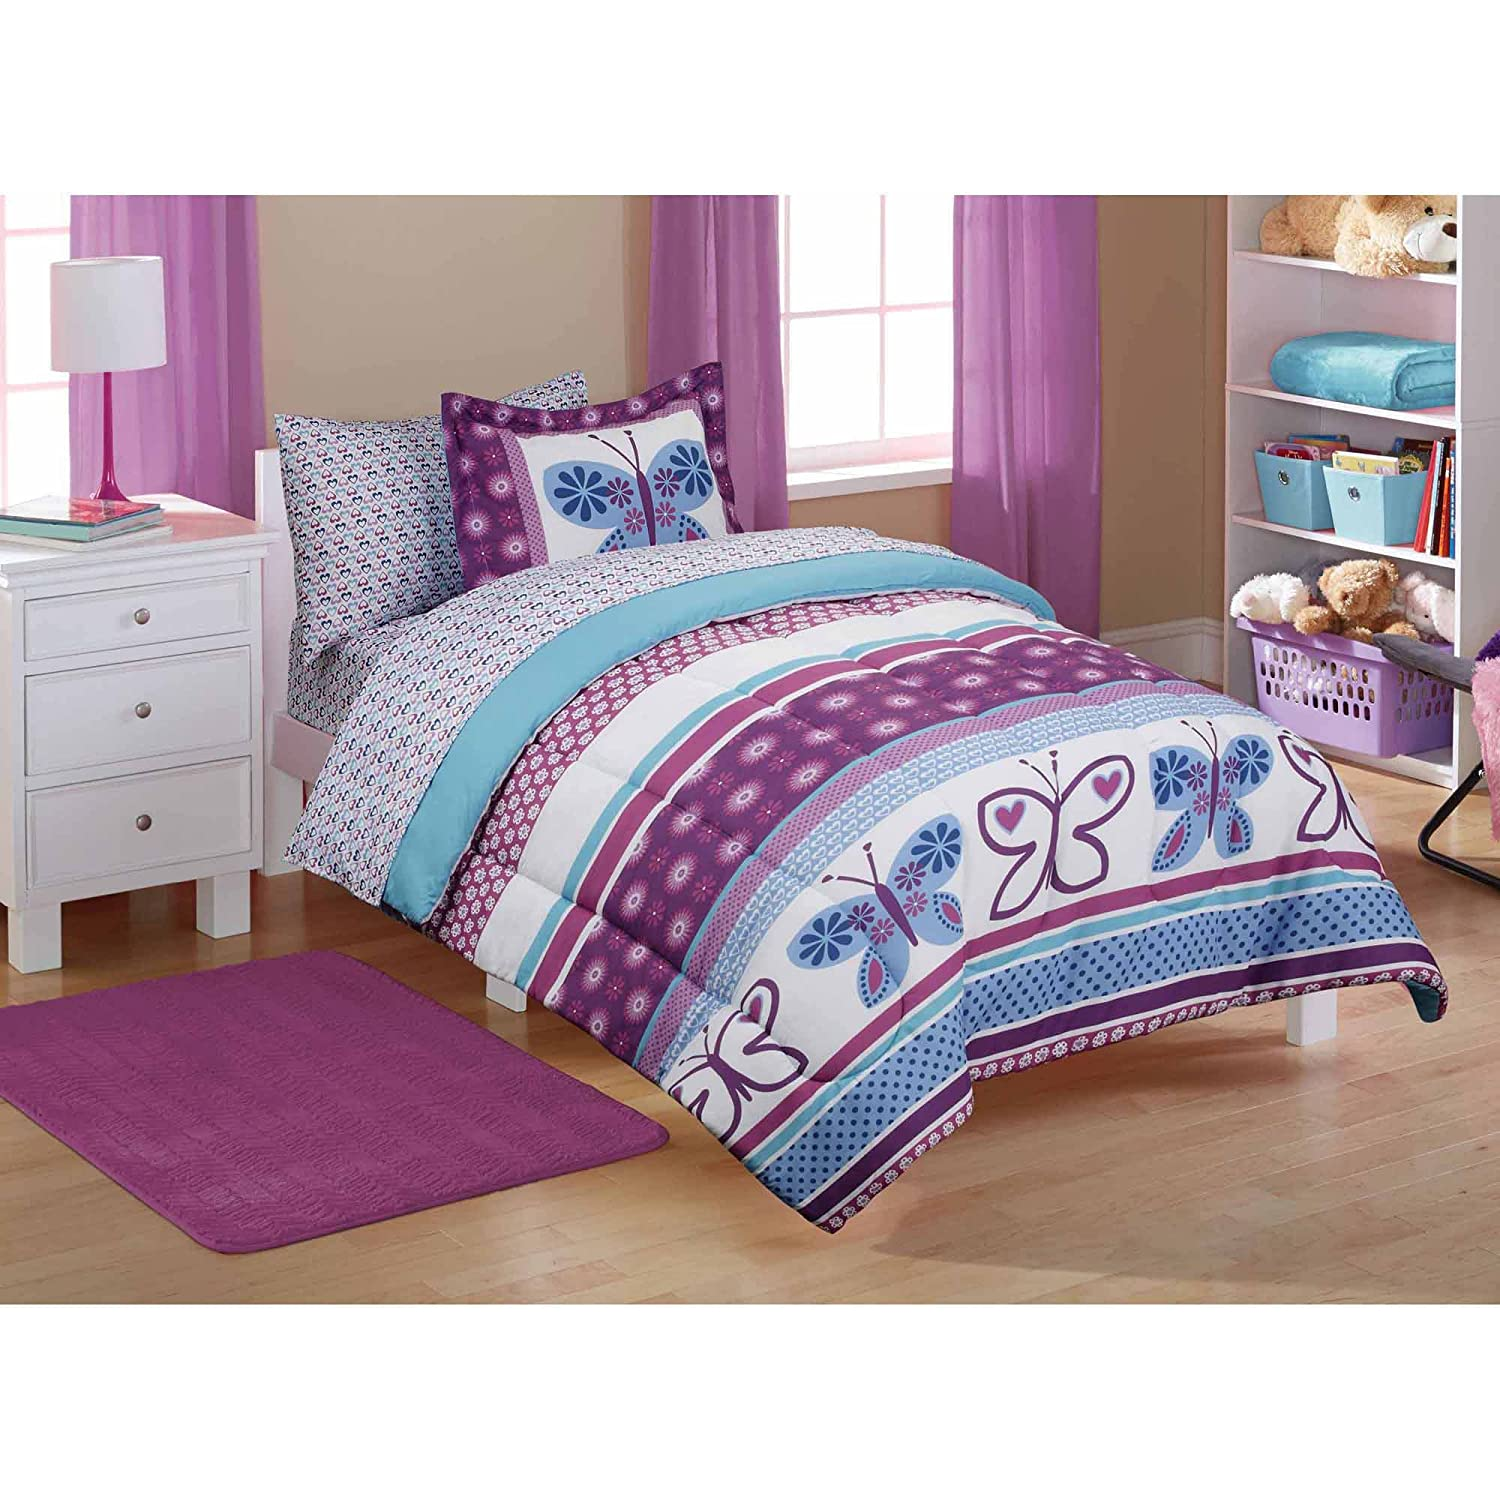 image comforter cream colored of bed and sets blue comforters style